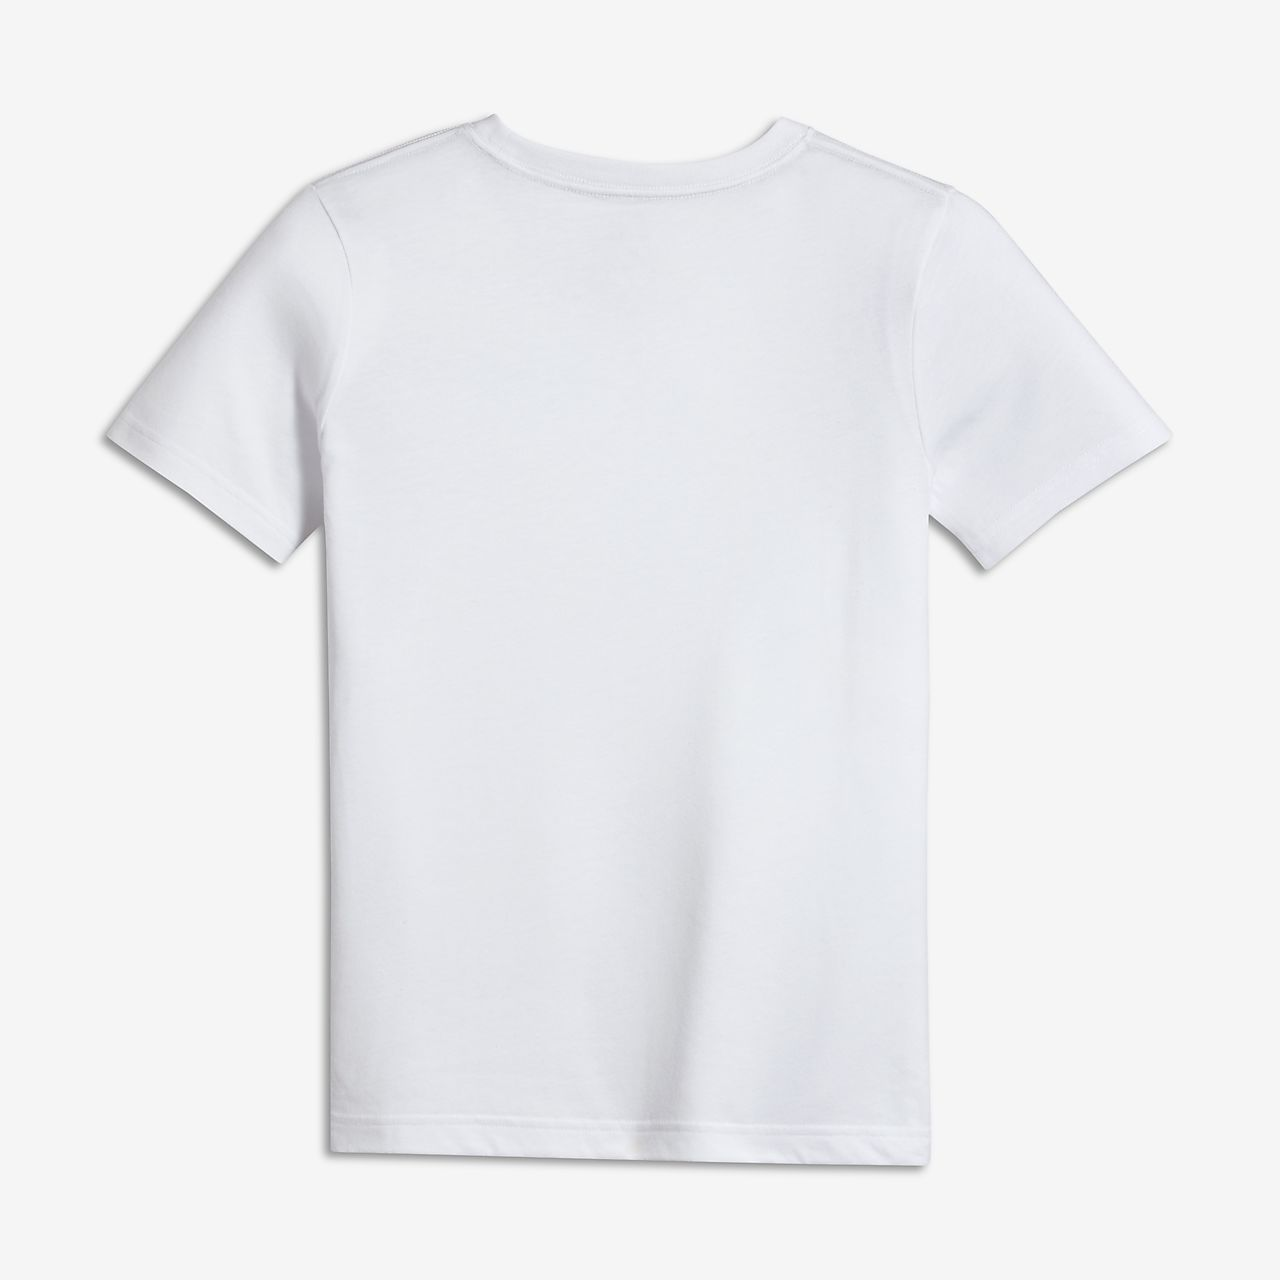 d64887690a Air Jordan 1 Fly Wings Older Kids  (Boys ) T-Shirt. Nike.com NL